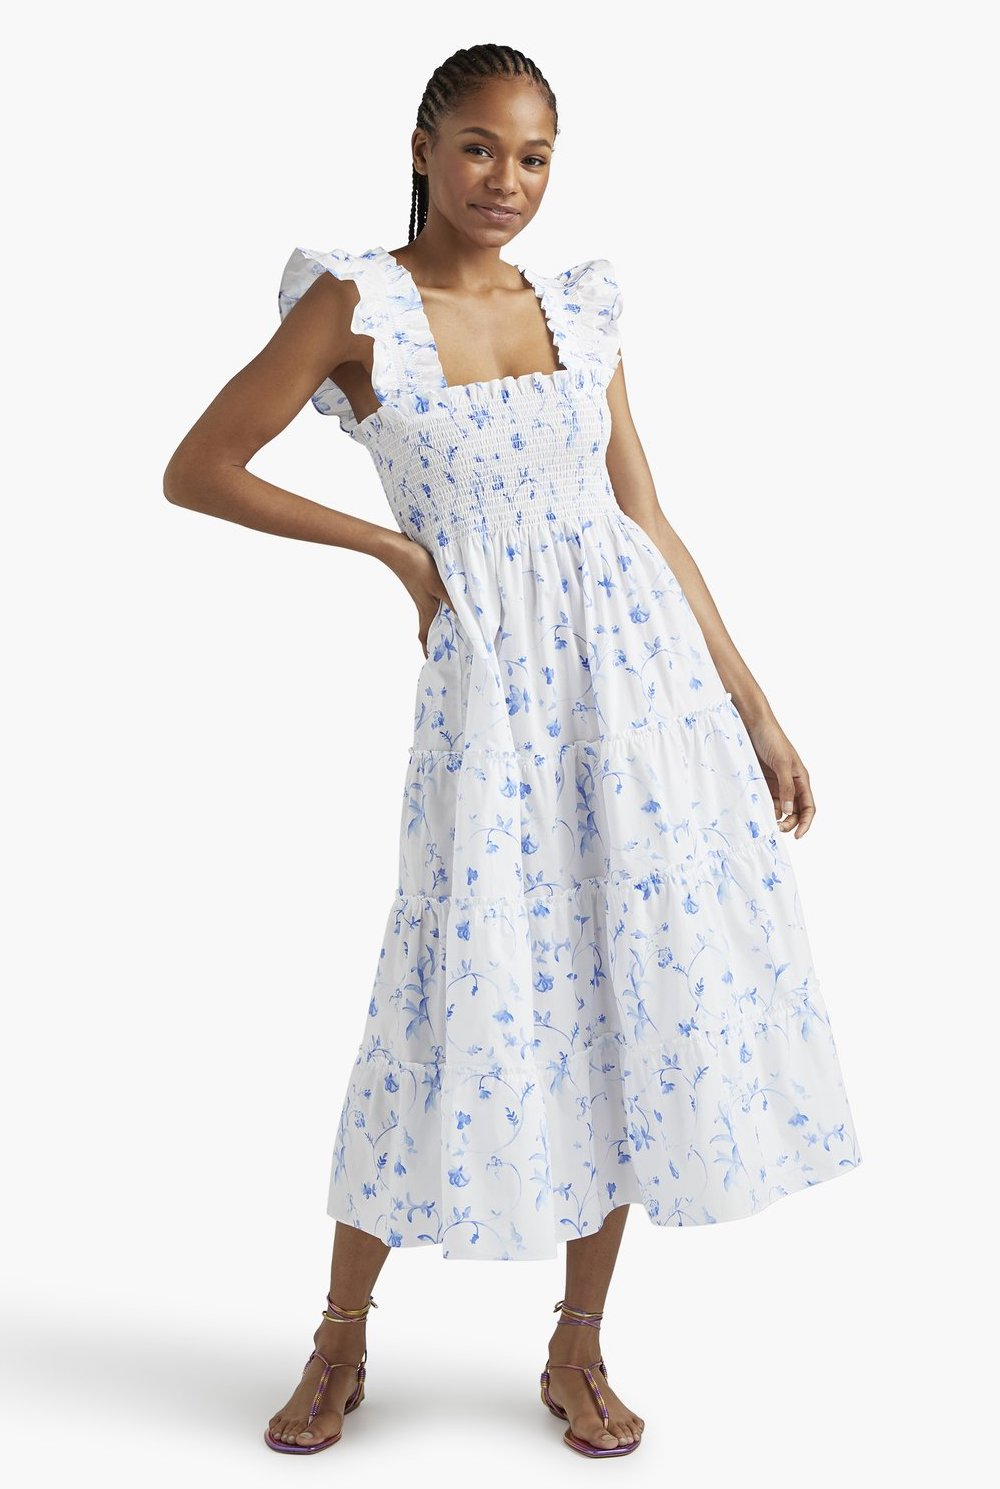 White and blue house dress with ruffles